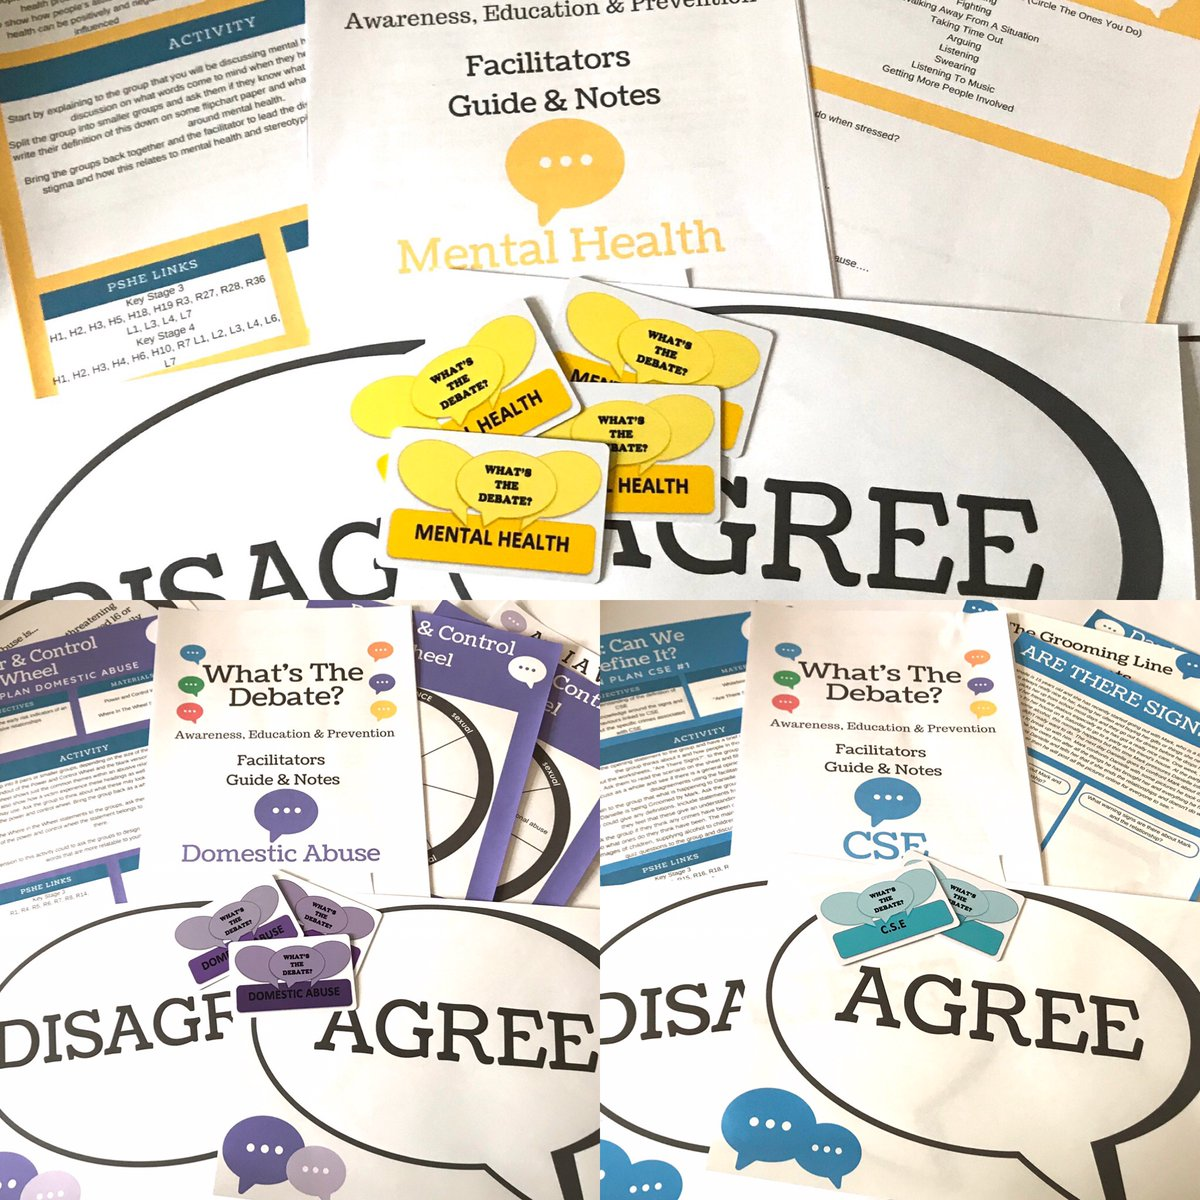 So what do you get in each of our #resource packs..  25 PVC Statement Cards 4 #LessonPlans  A Powerpoint A Facilitators Guide  There's 10% off all resources throughout July using code Limited10  #PSHE #RSHE #RSE #SRE  https://t.co/Gm5Cg6tumo https://t.co/KiaNnufV8u